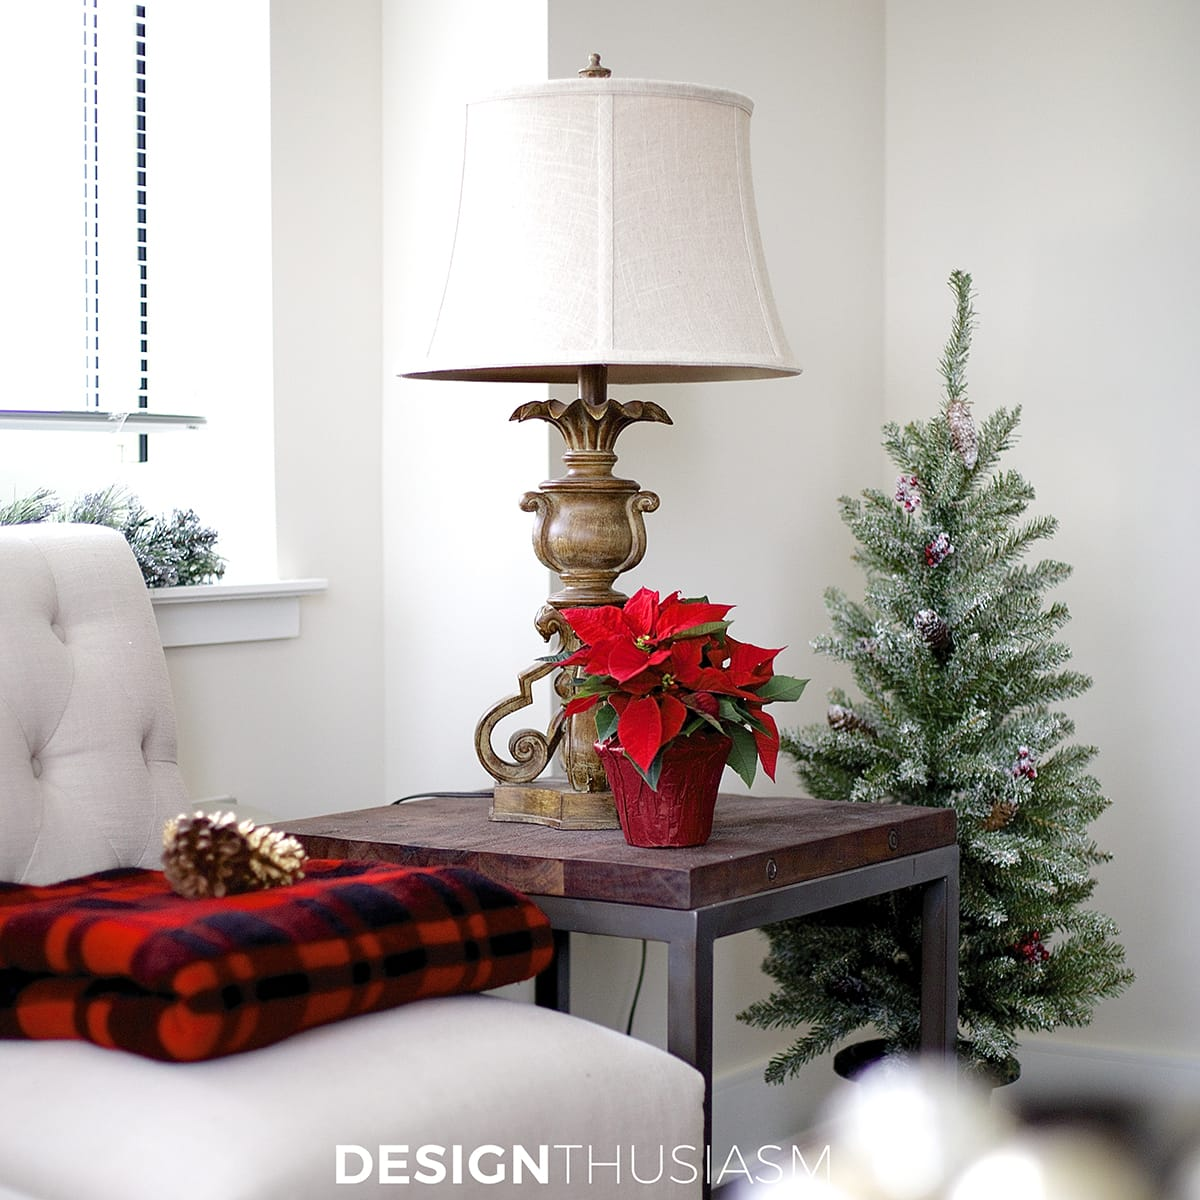 holiday decorating ideas for a small apartment designthusiasmcom - Apartment Christmas Decorating Ideas